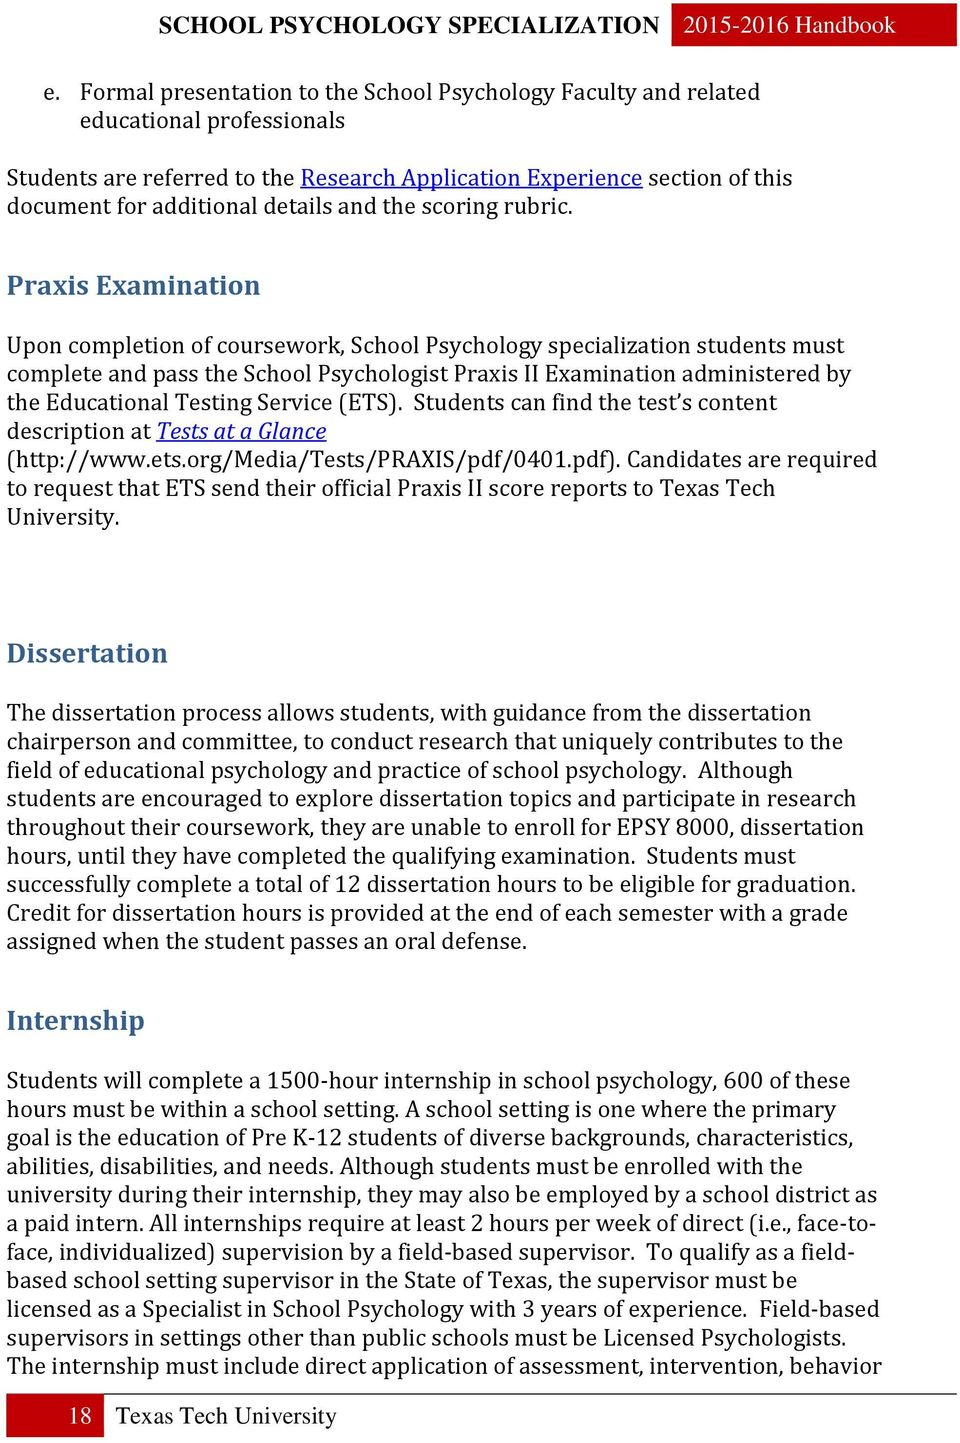 Praxis Examination Upon completion of coursework, School Psychology specialization students must complete and pass the School Psychologist Praxis II Examination administered by the Educational